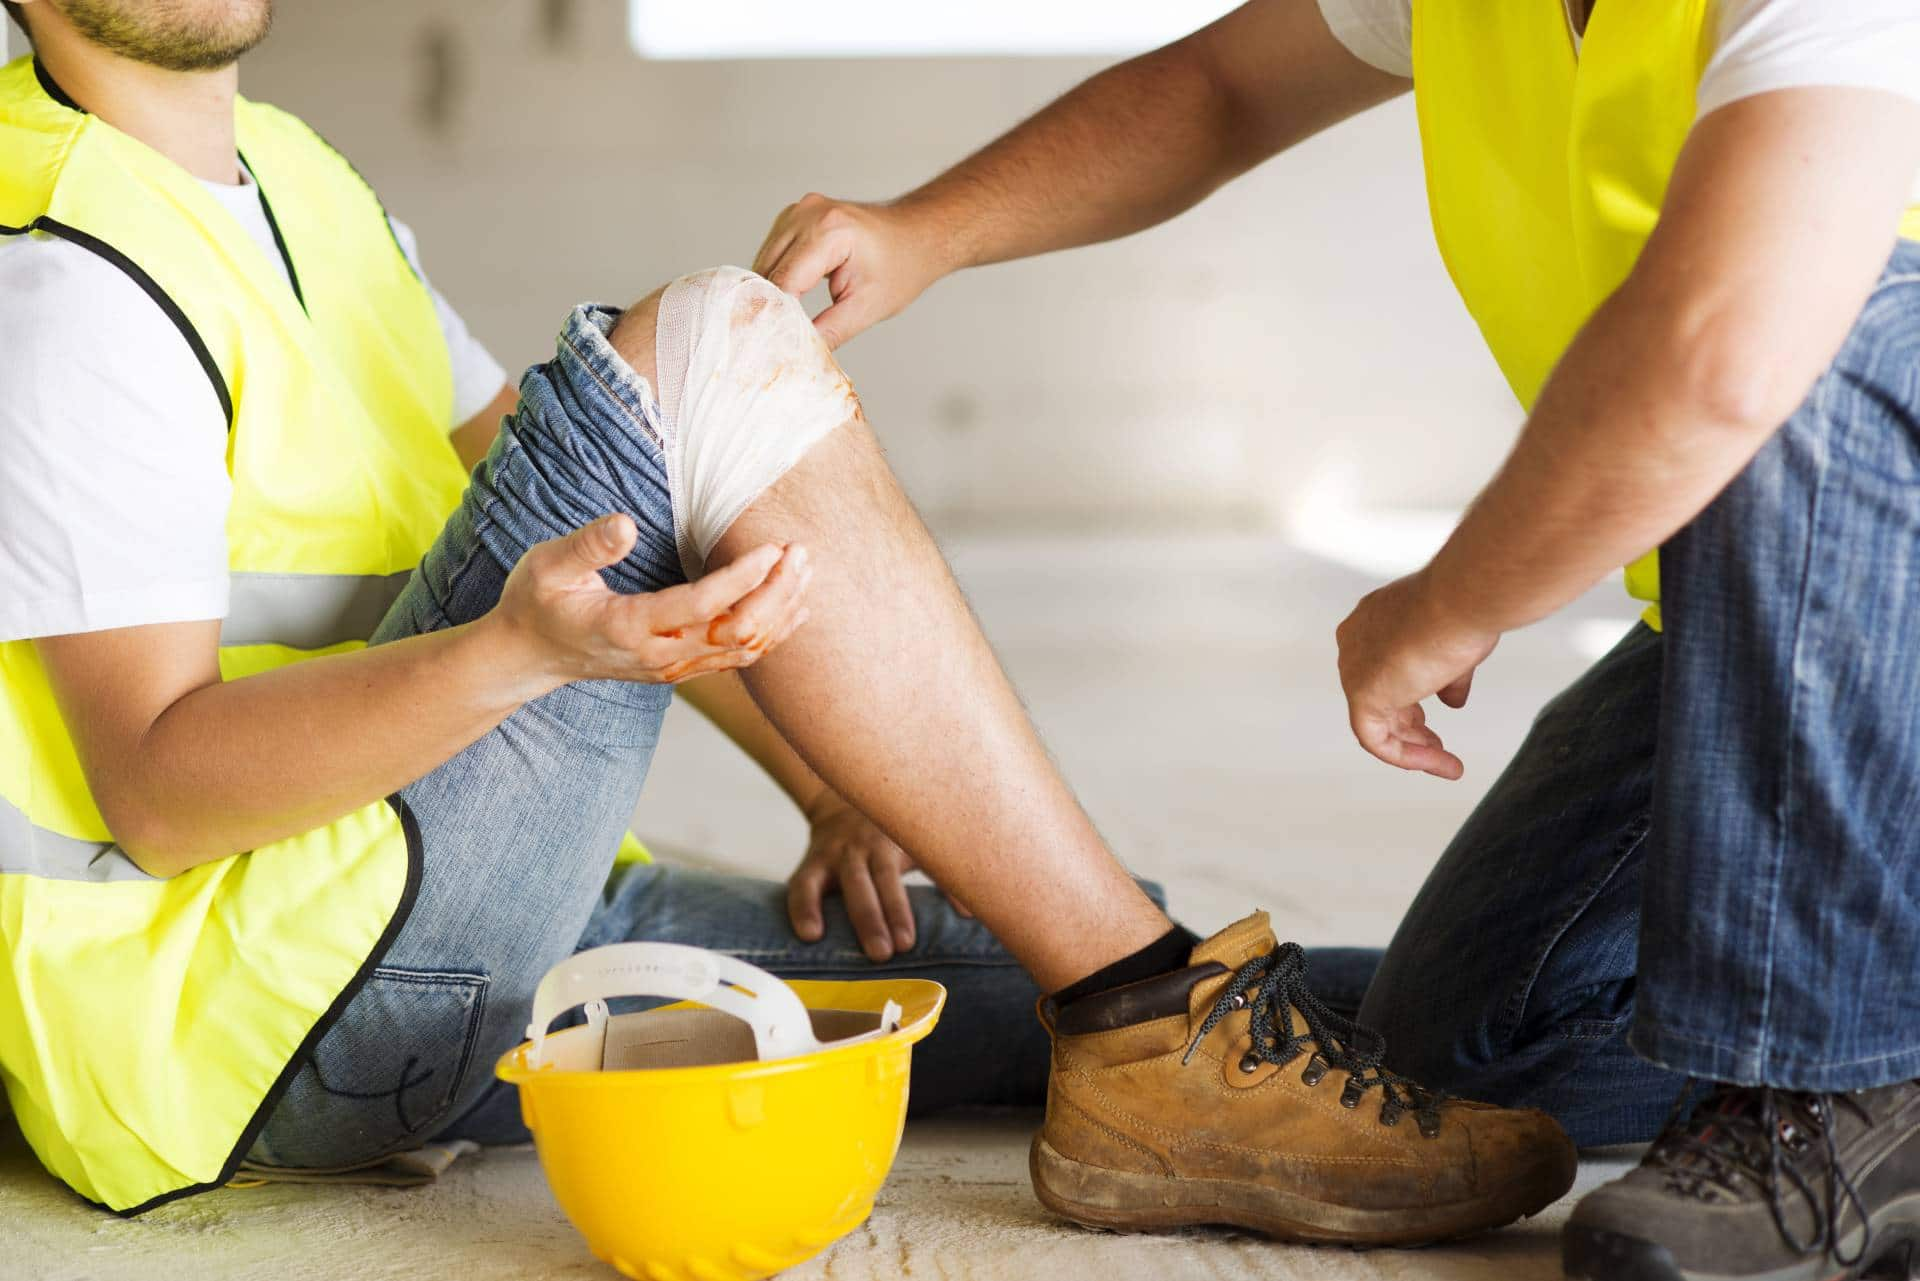 Hurt on the Job? Schedule a free consultation with our personal injury lawyers at The Angell Law Firm.